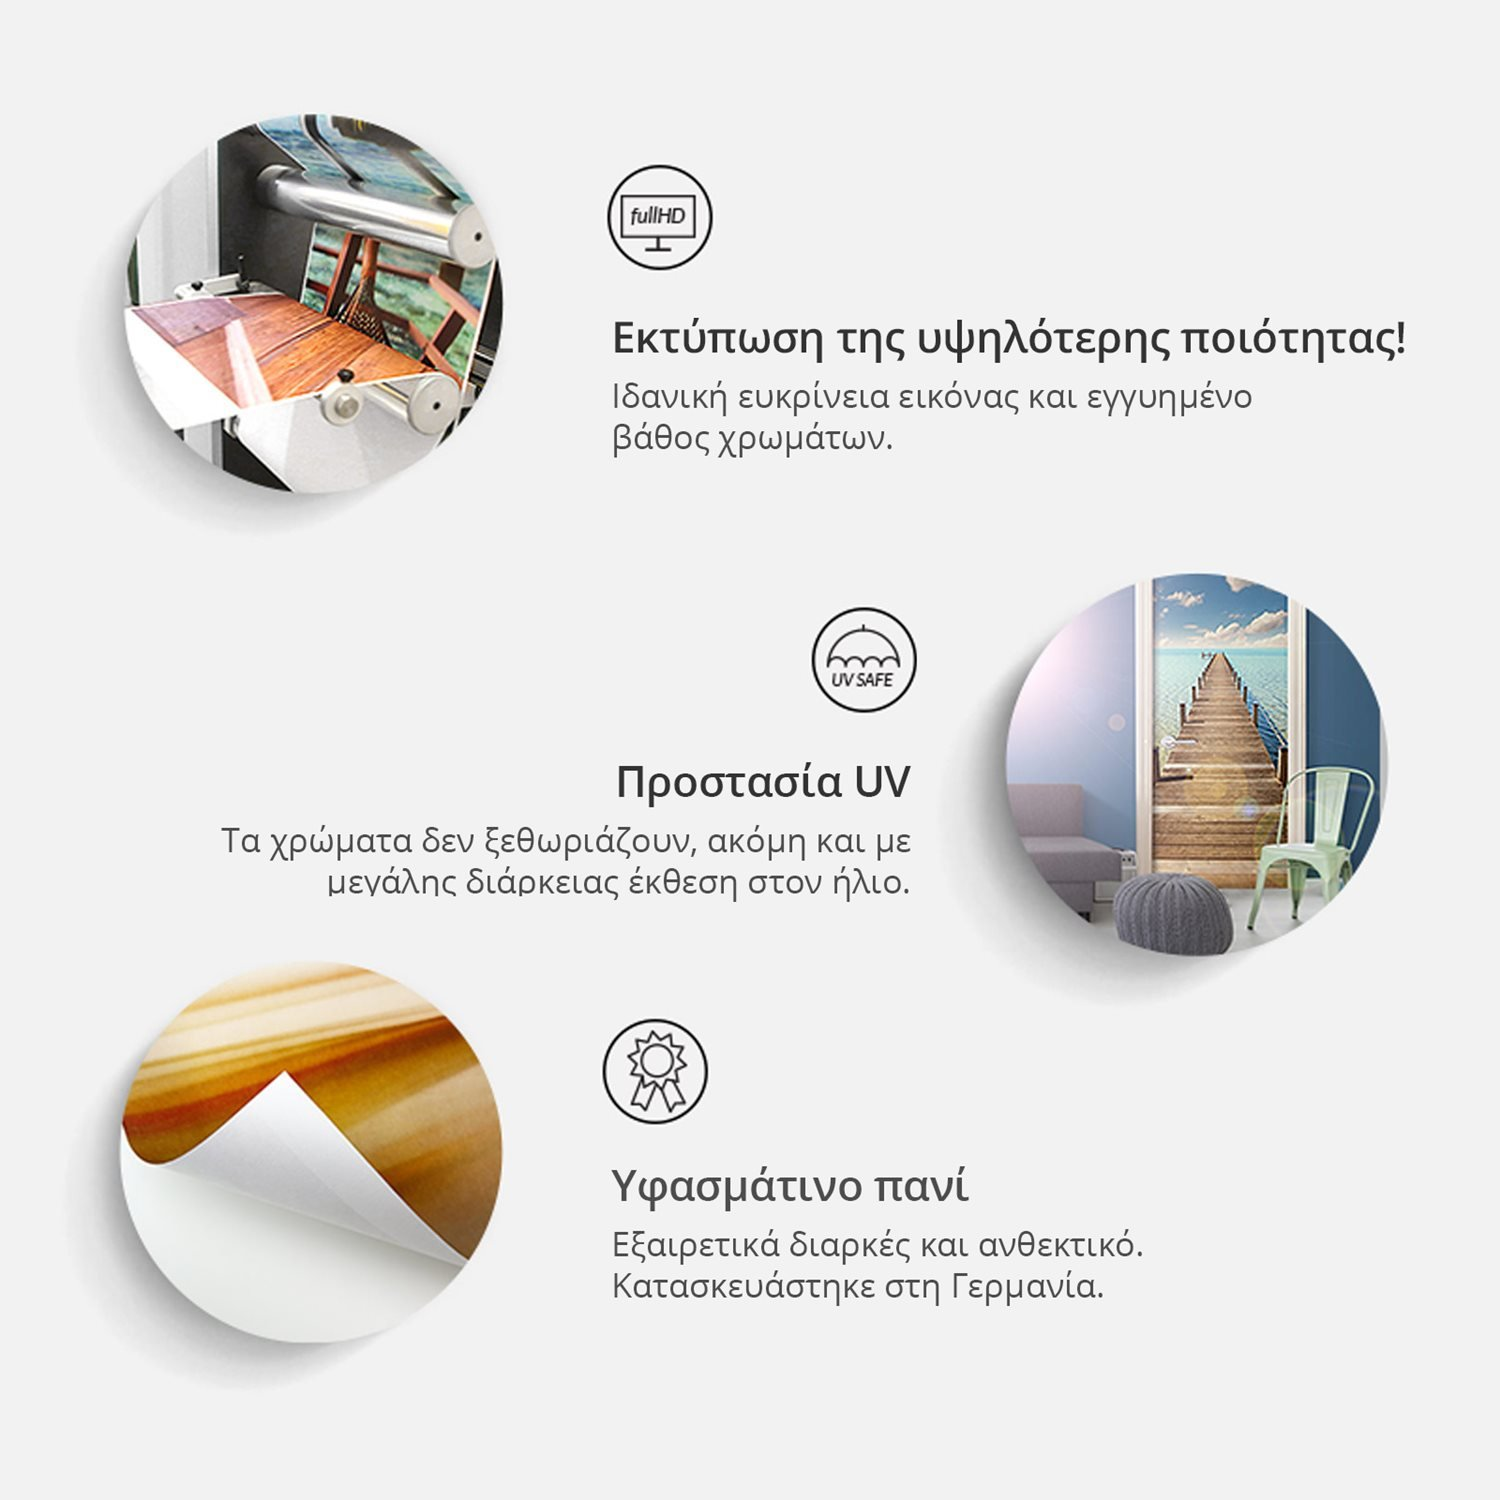 product-info-overview-image